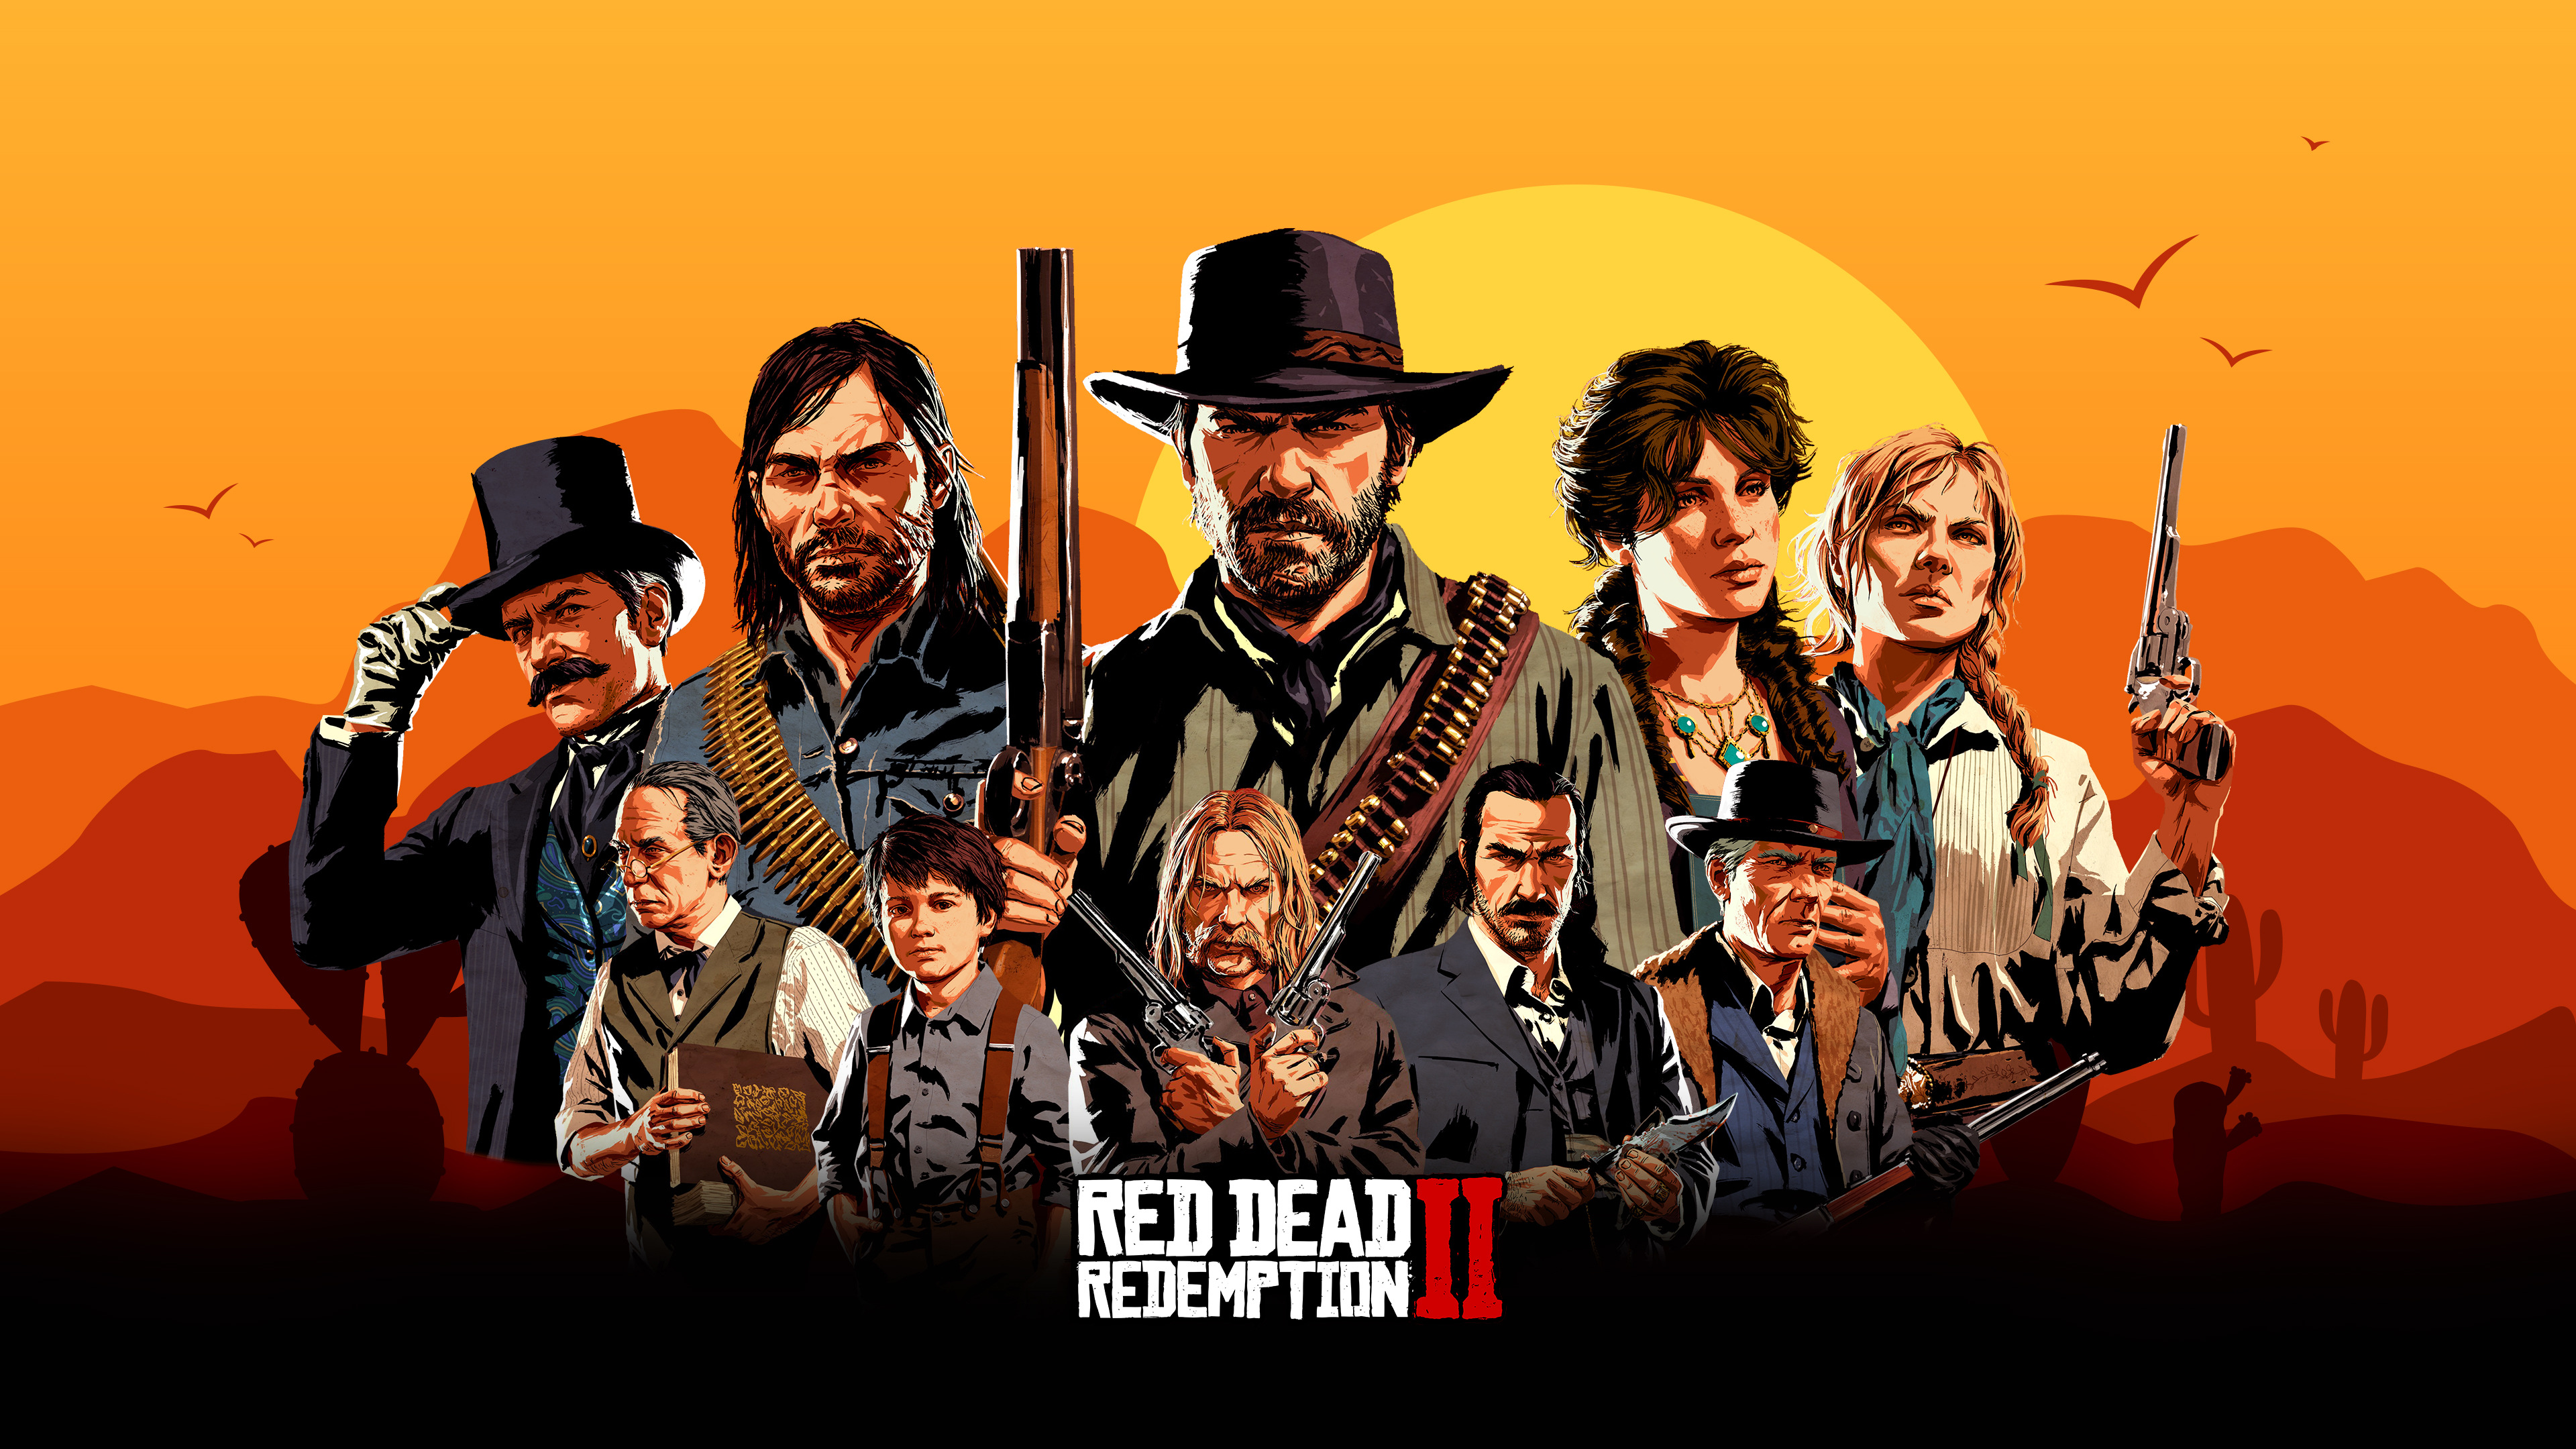 Red Dead Redemption 2 Game Characters Hd Games 4k Wallpapers